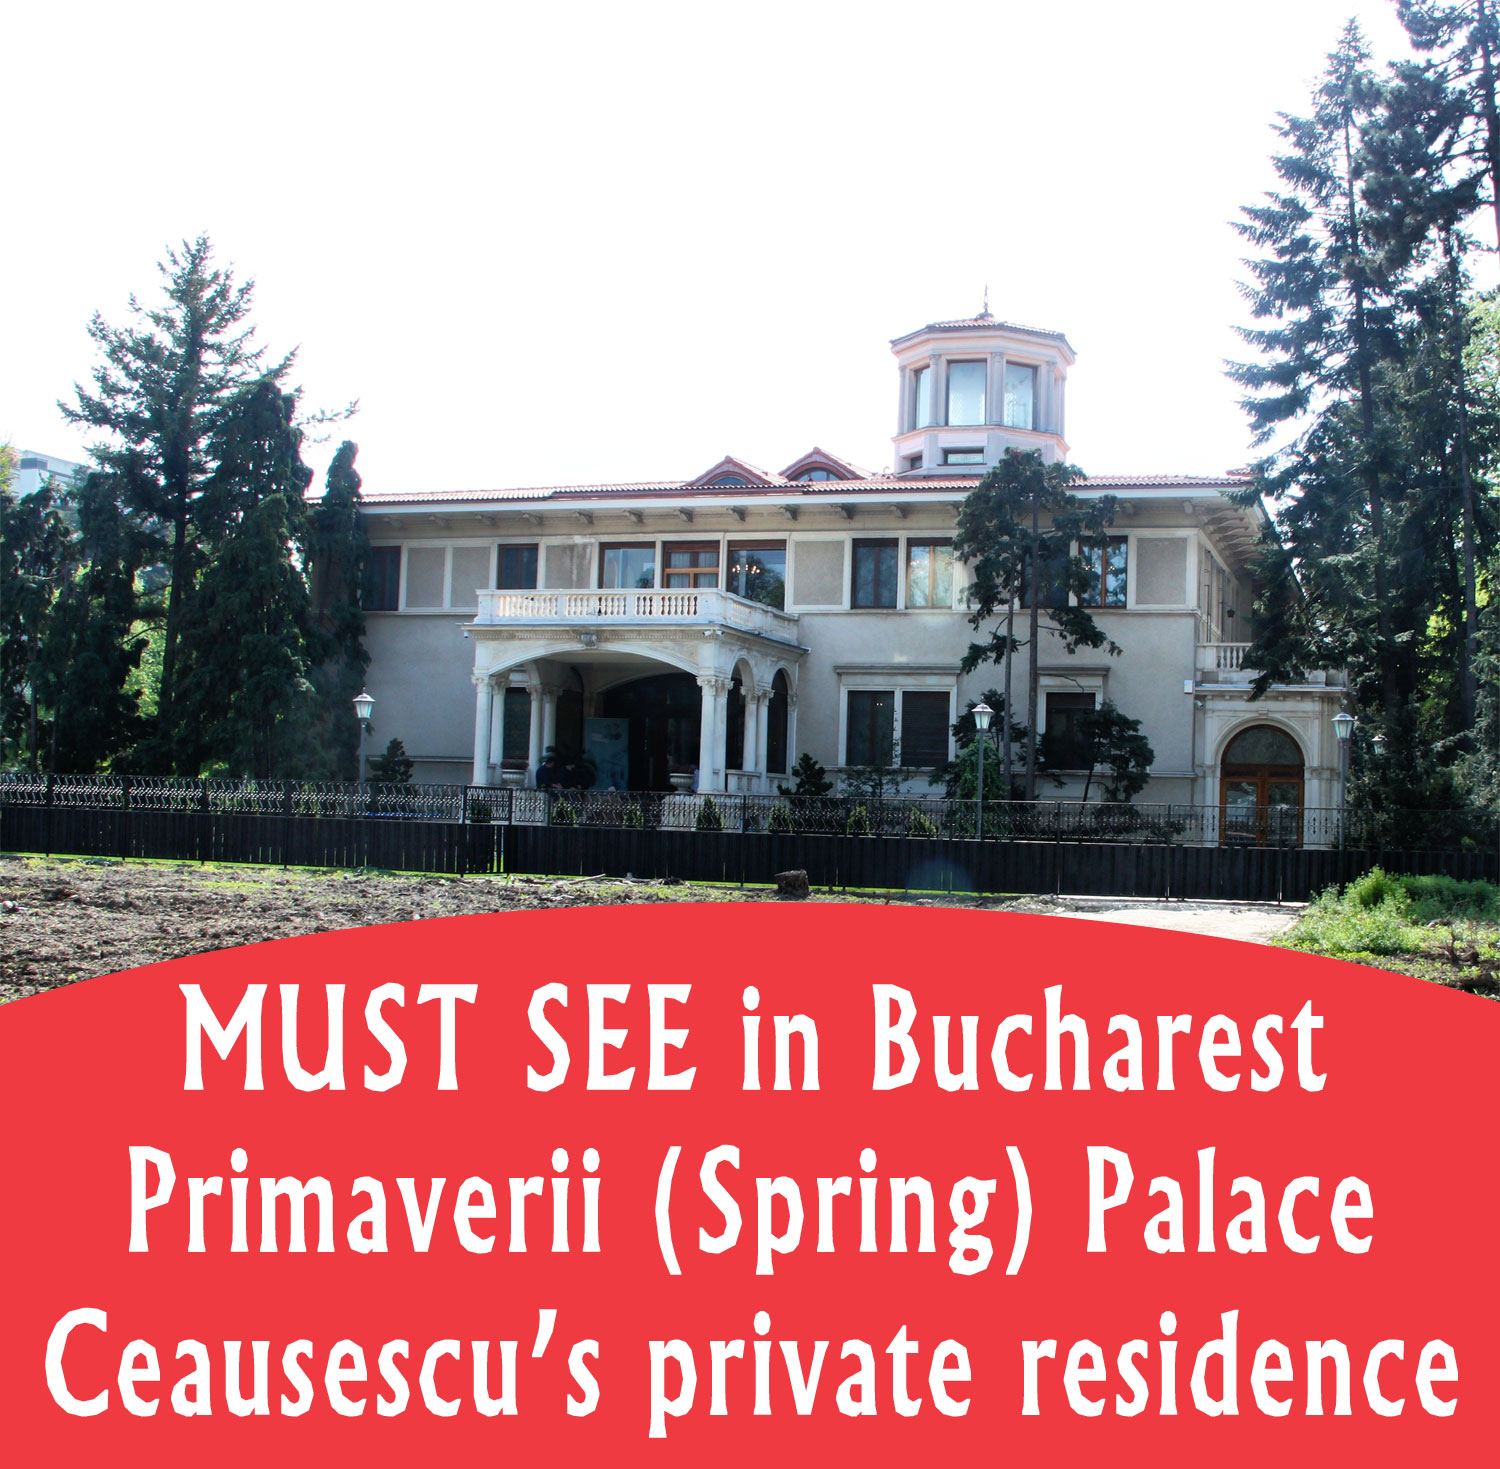 A new MUST SEE landmark in Bucharest: Primaverii (Spring) Palace, Ceausescu's private residence